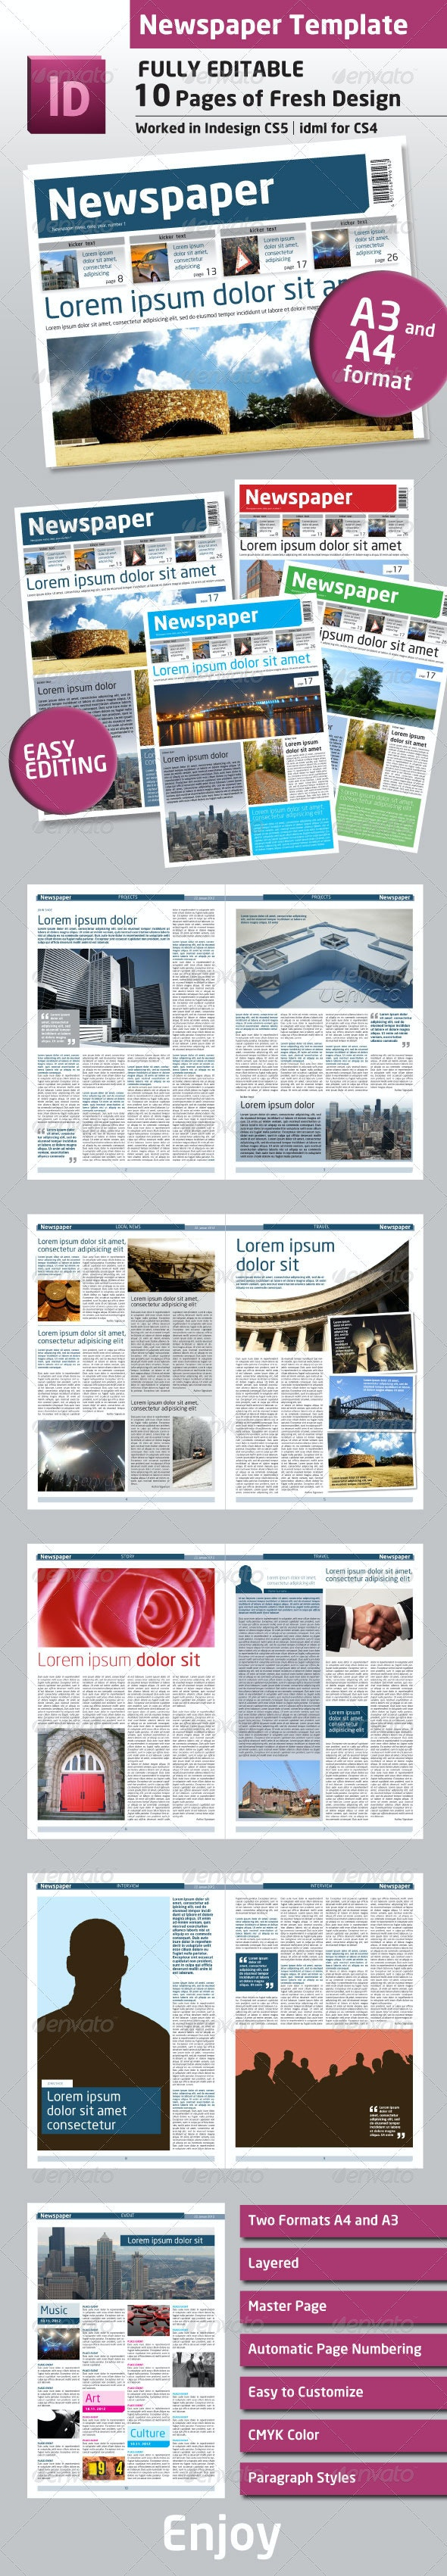 Newspaper Template A4 and A3 Format 10 Pages - Newsletters Print Templates